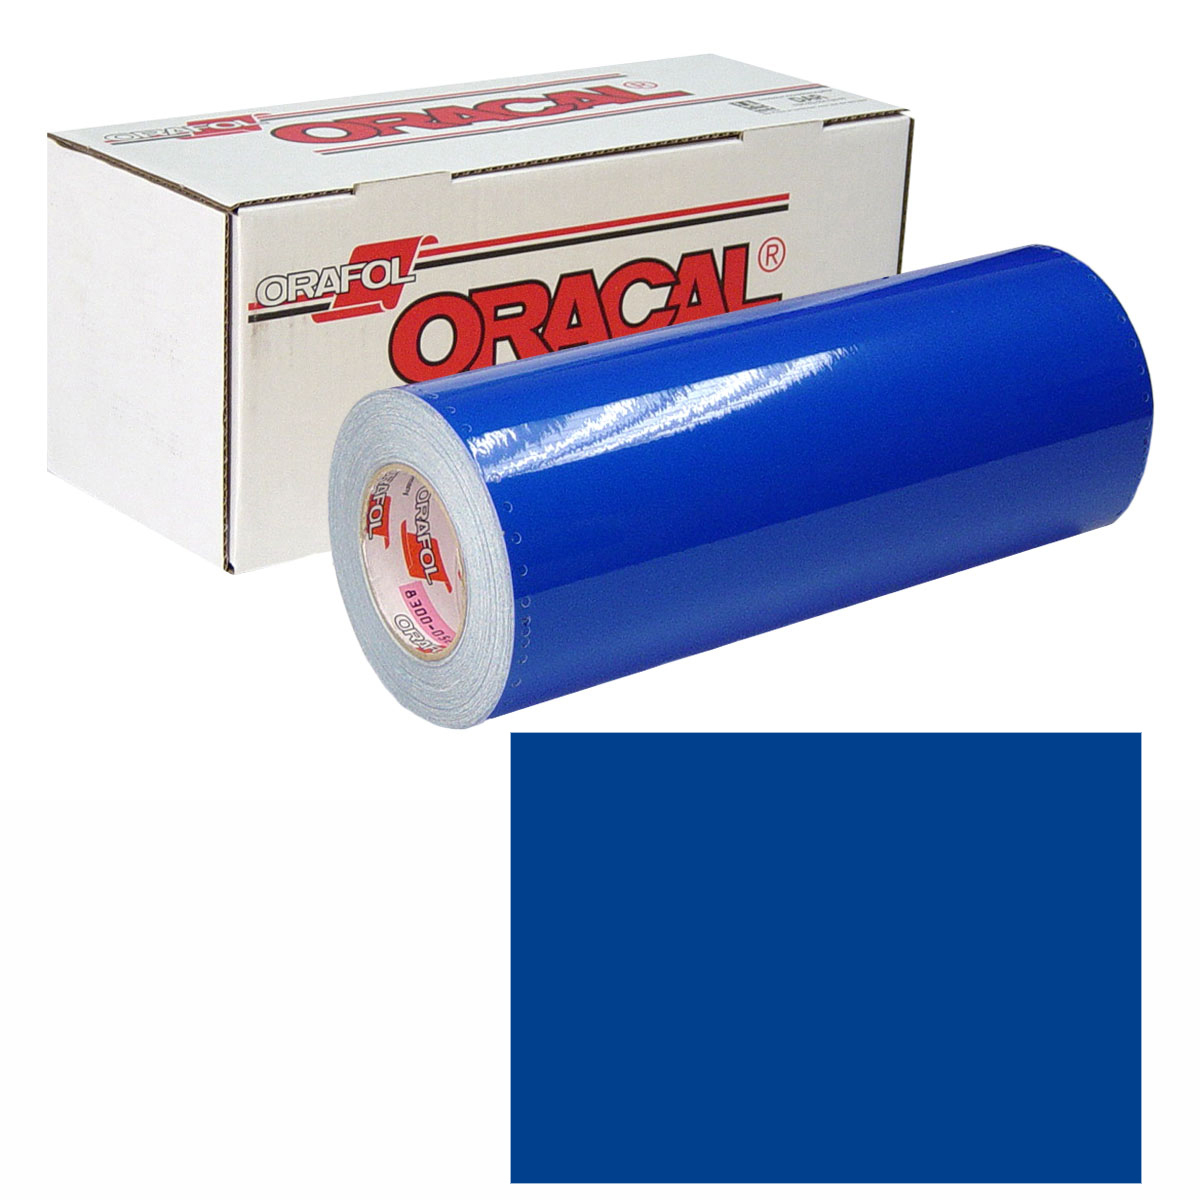 ORACAL 631 Unp 30in X 50yd 057 Traffic Blue